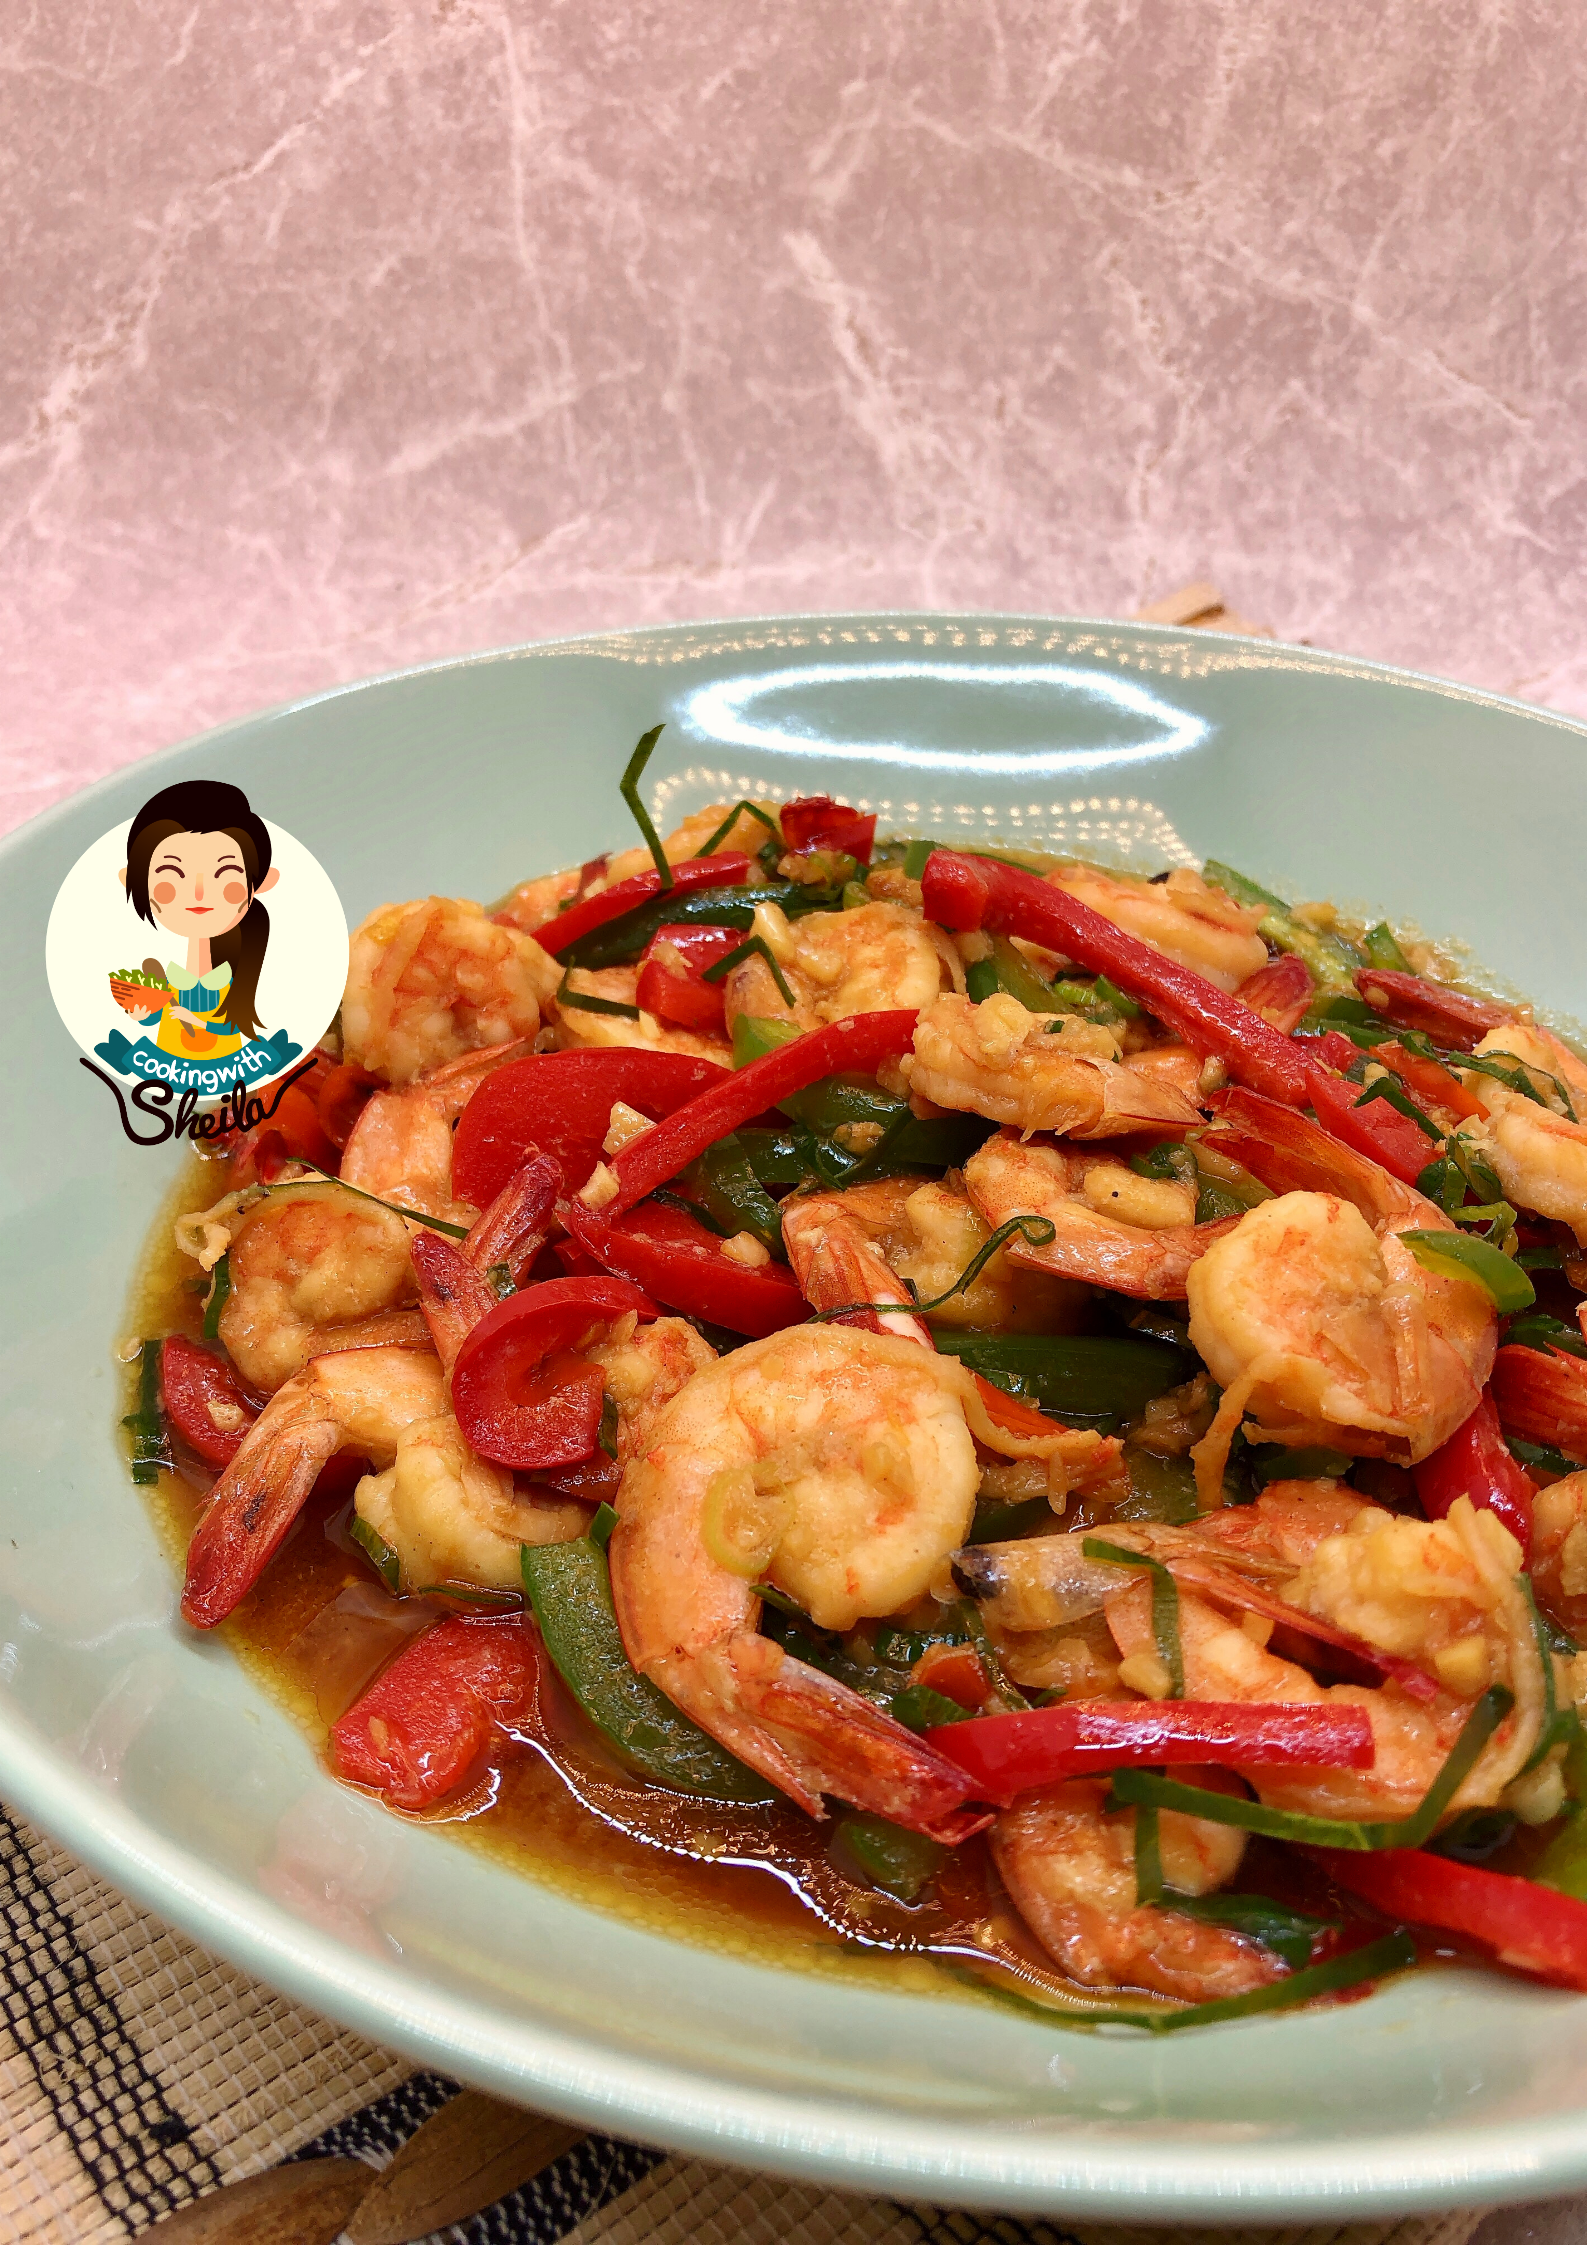 Tumis Udang Pedas Cooking With Sheila Makan Malam Resep Seafood Tumis